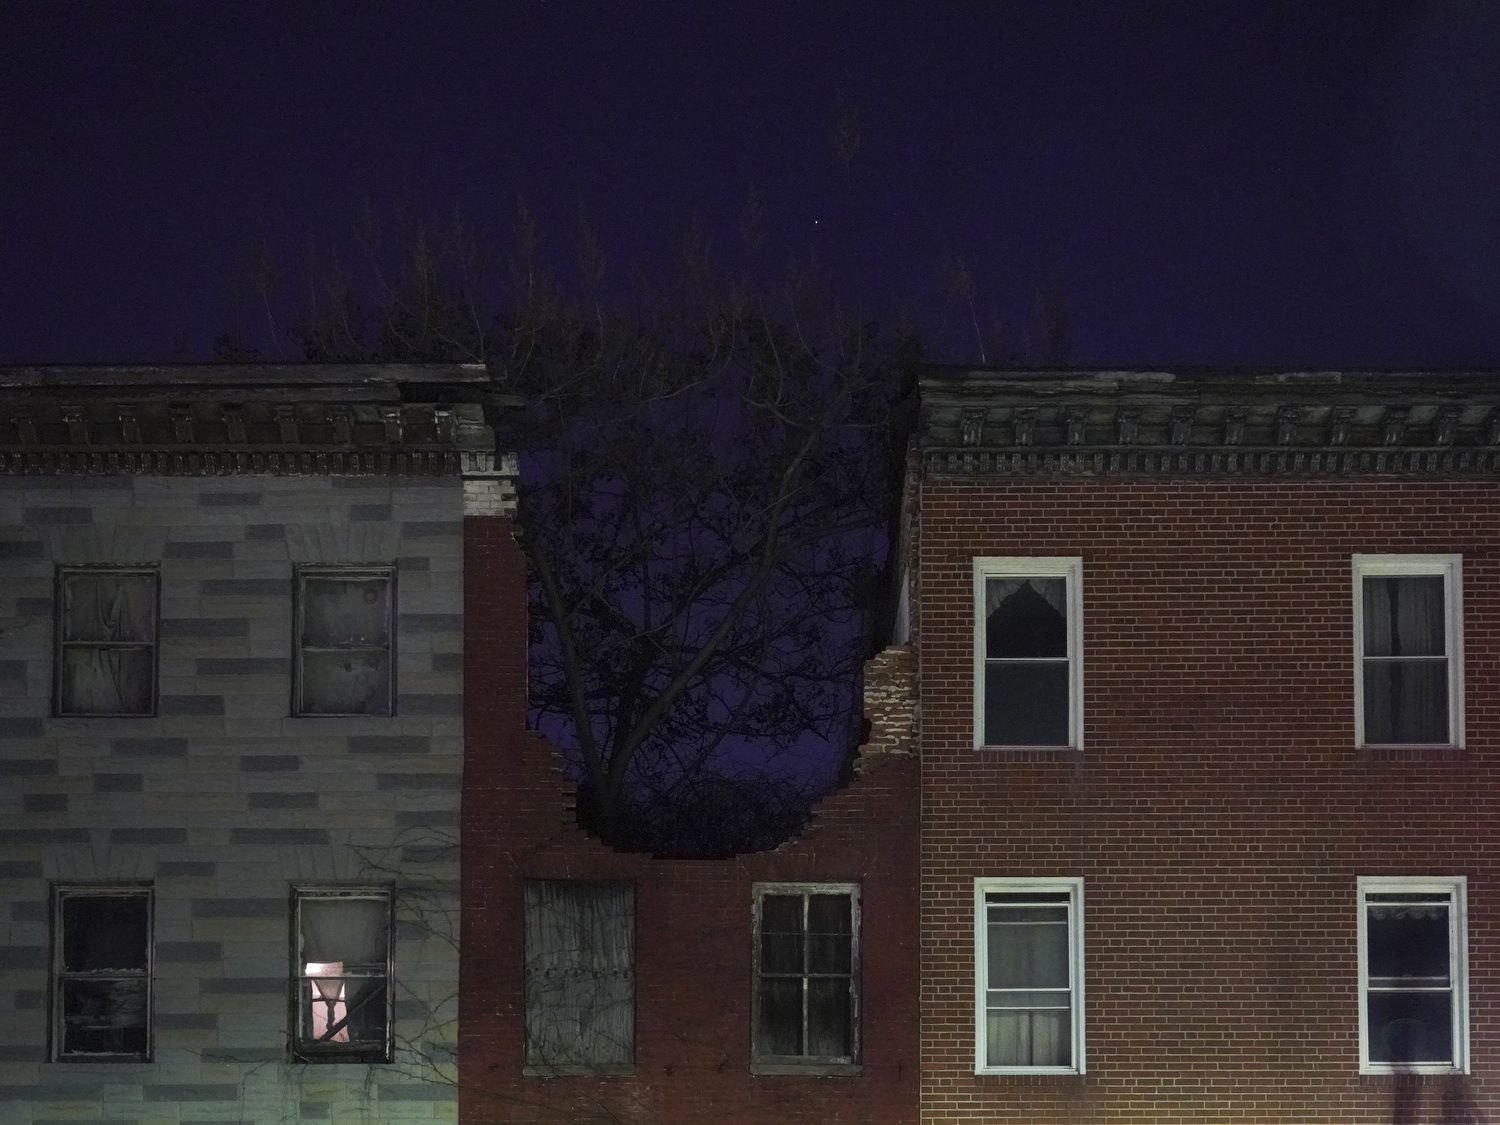 2019. Baltimore, Maryland. USA. Scenes of decaying parts of Baltimore.  The city is well below peak population levels and vacant blocks and boarded up houses abound.